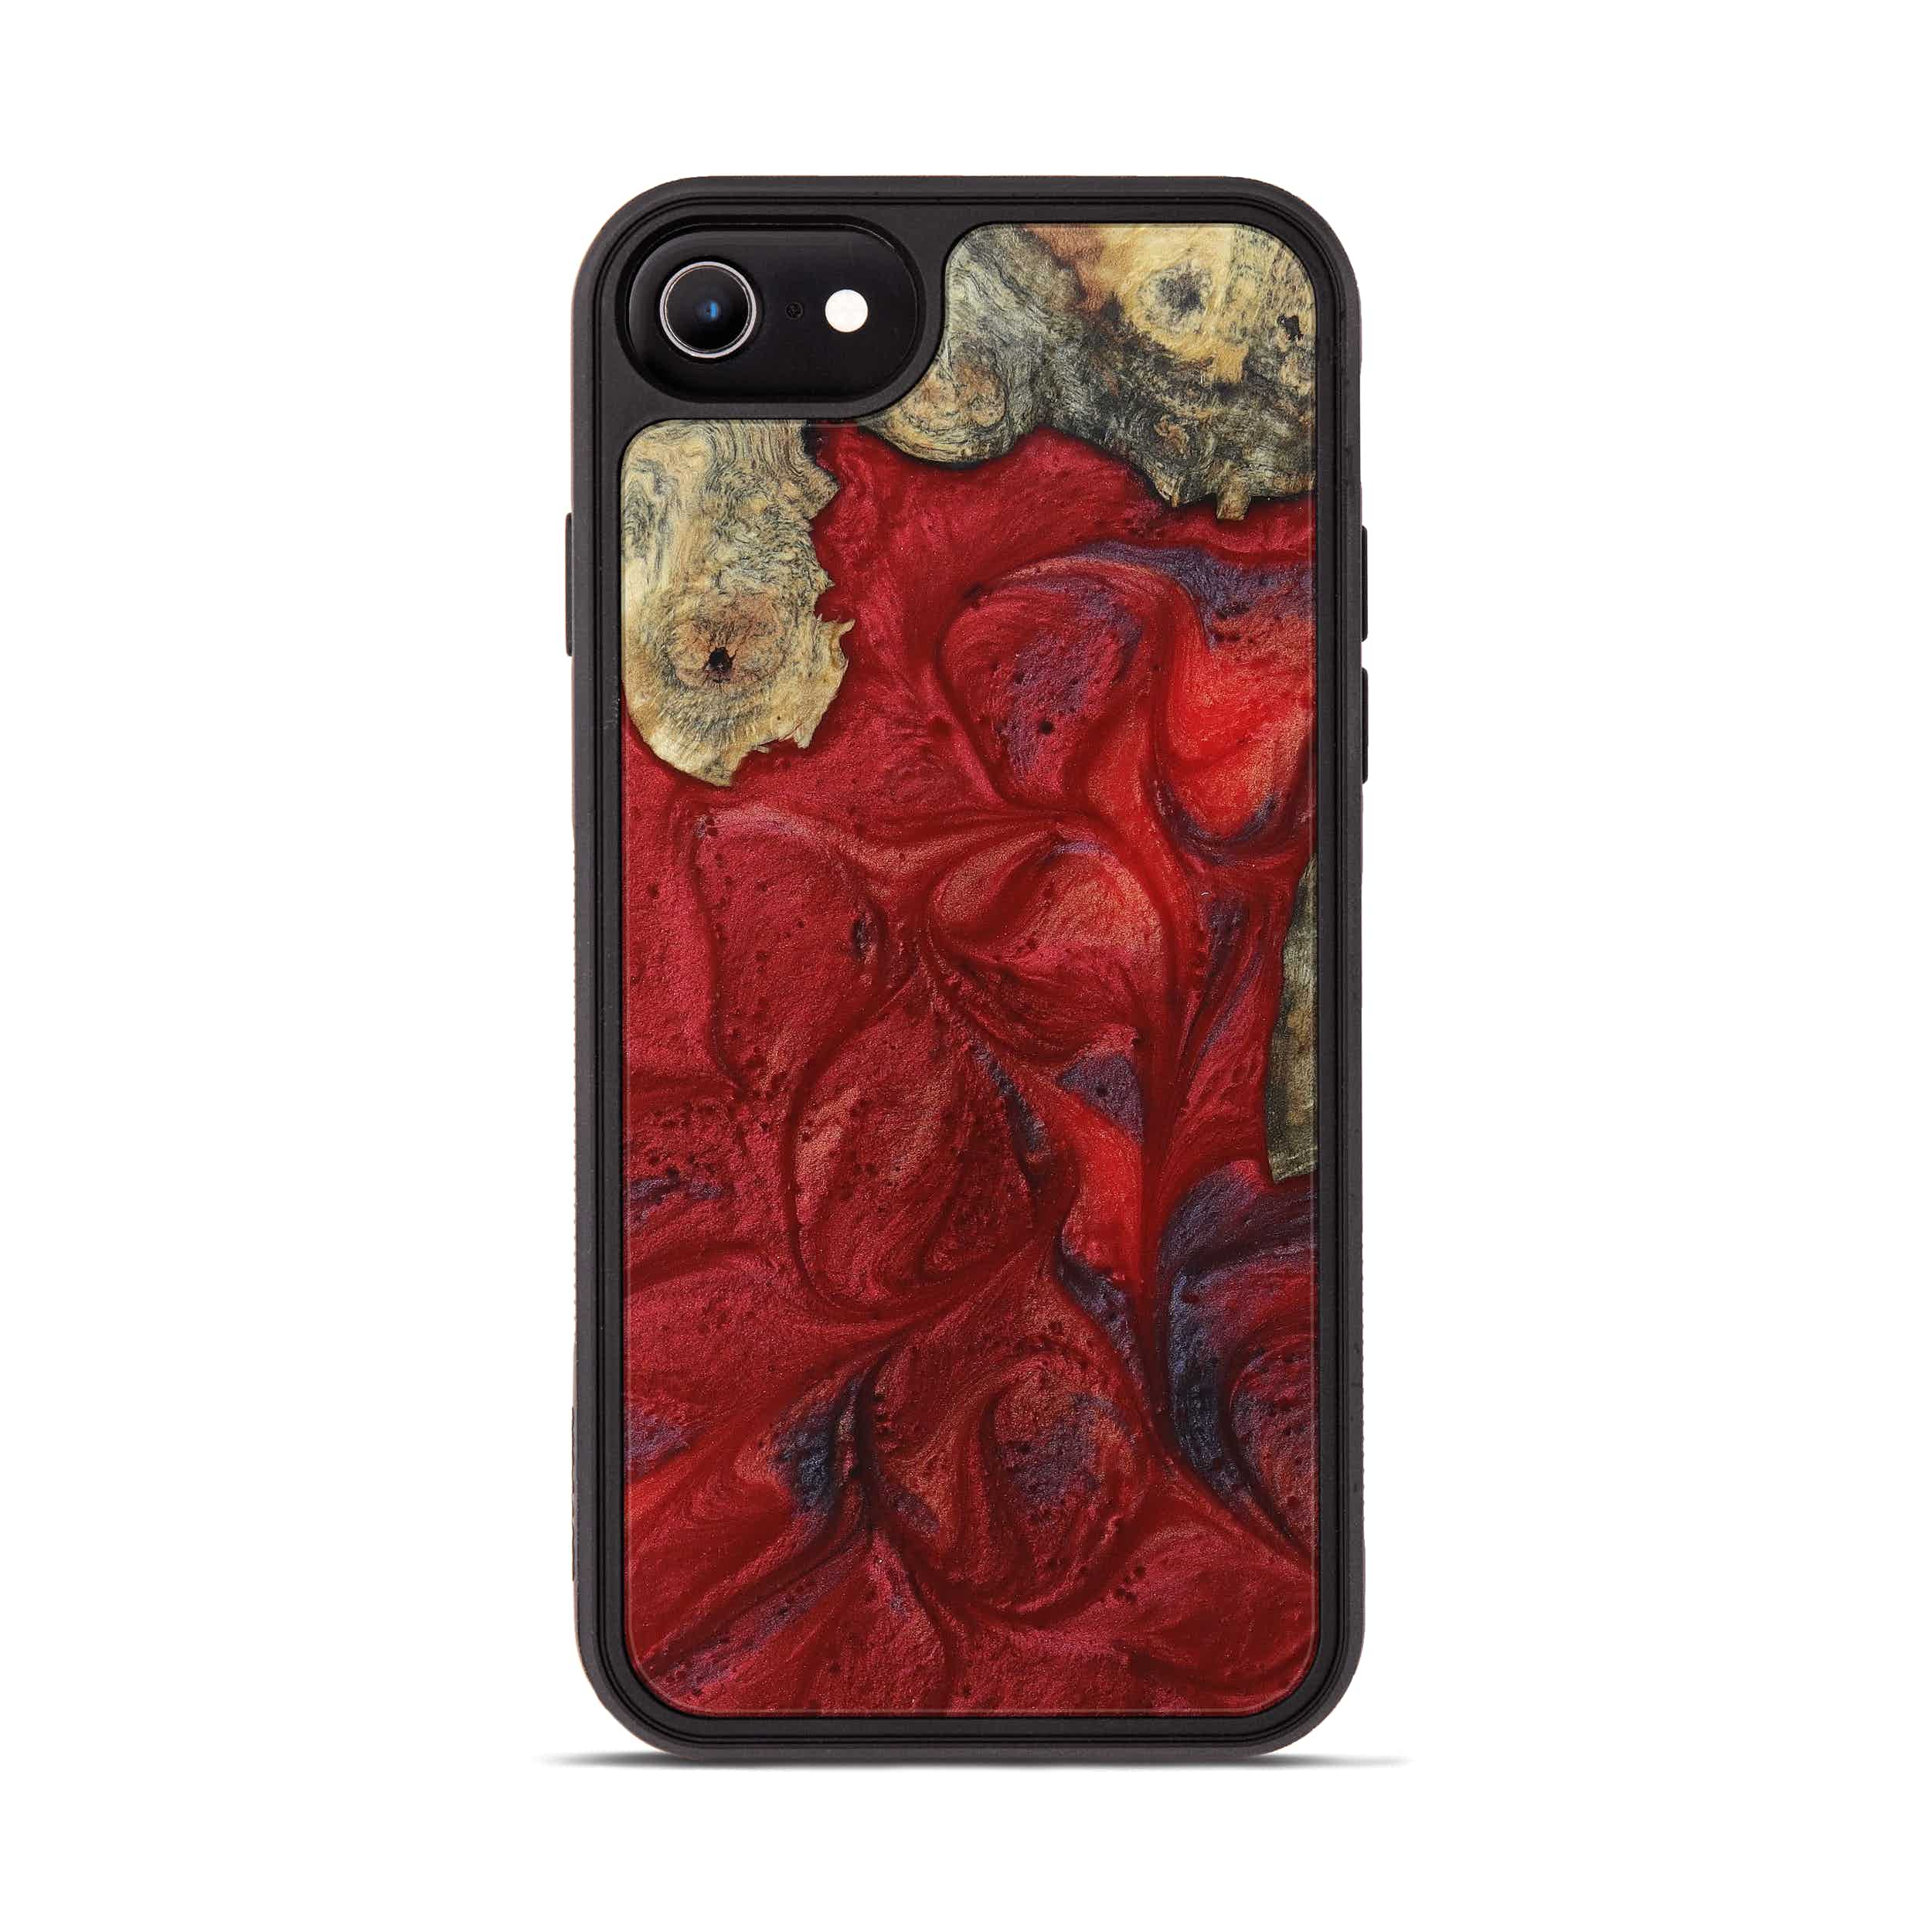 iPhone 6s Wood+Resin Phone Case - Jerome (Dark Red, 395202)